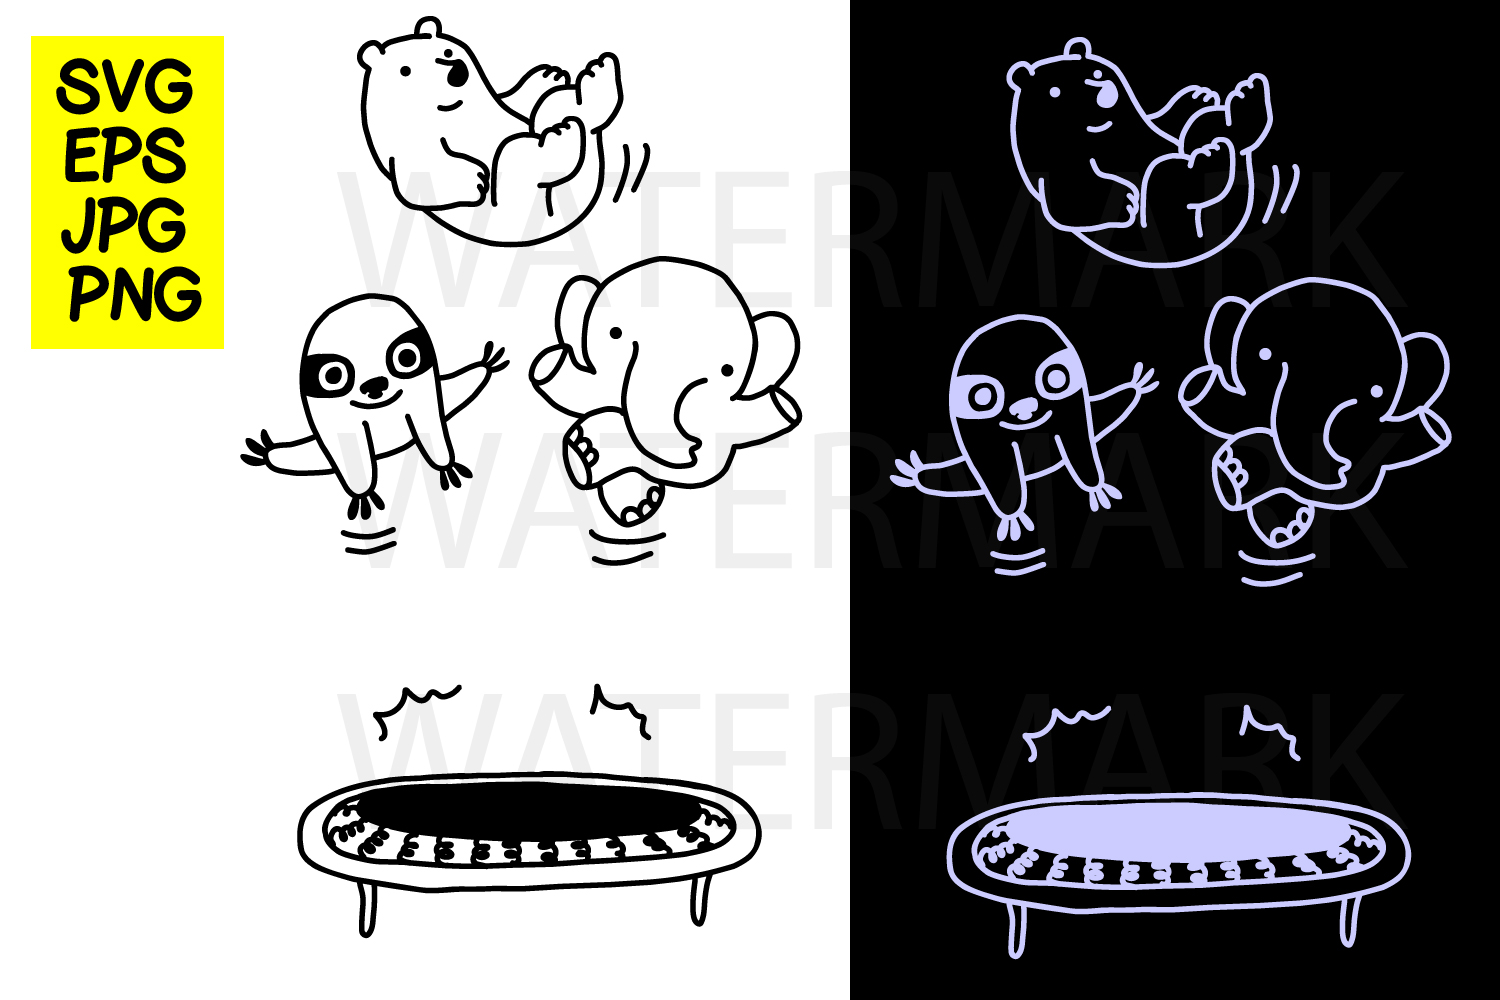 Trampoline with elephant sloth and bear- SVG-EPS-JPG-PNG example image 1